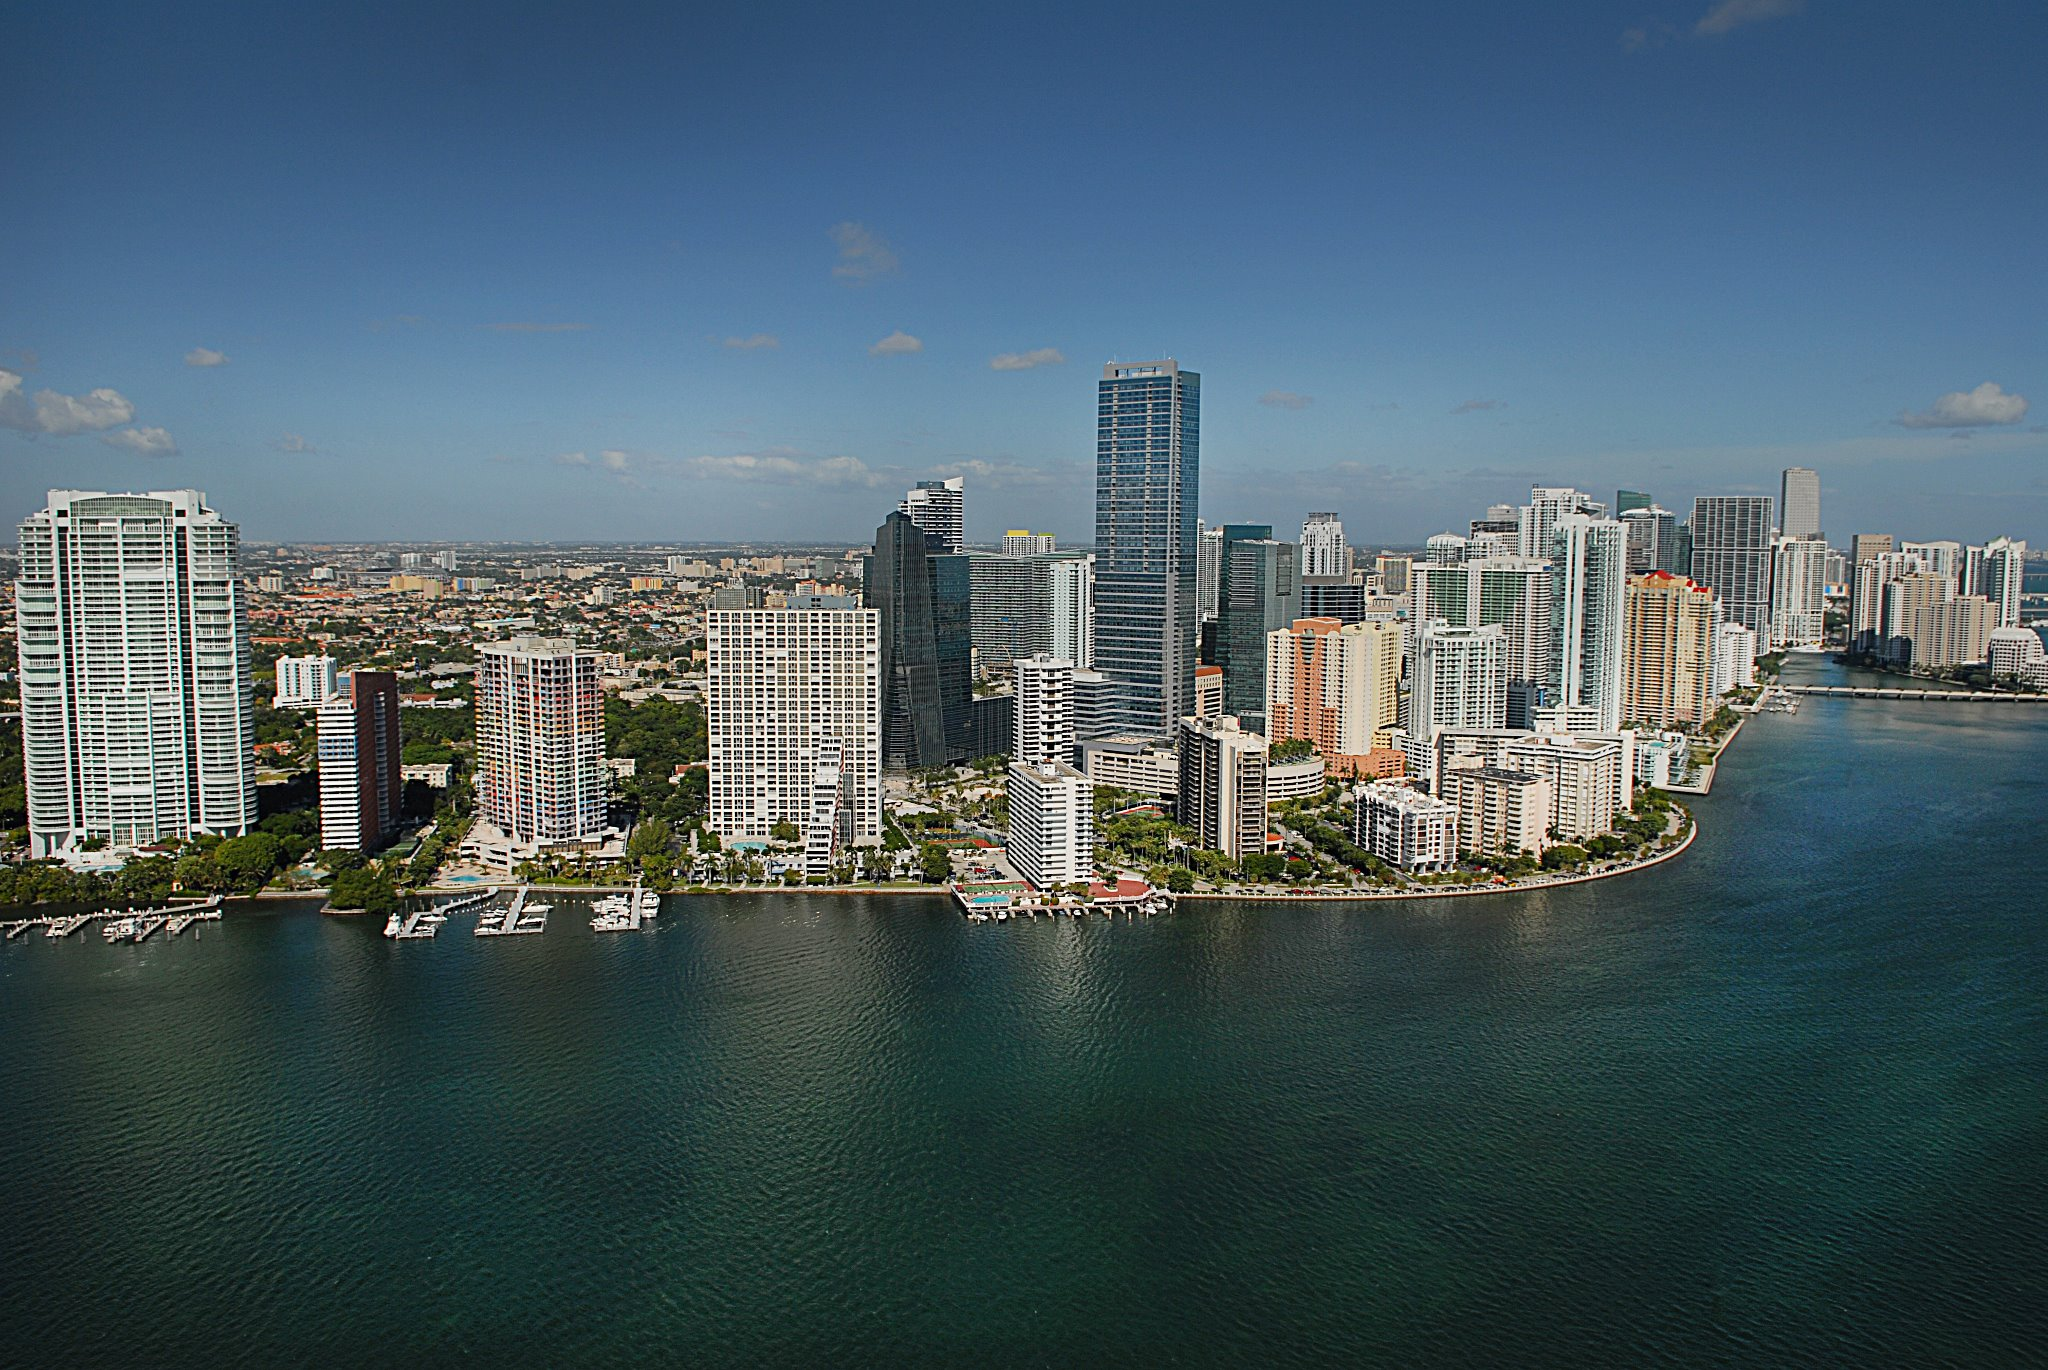 The Growth of Brickell